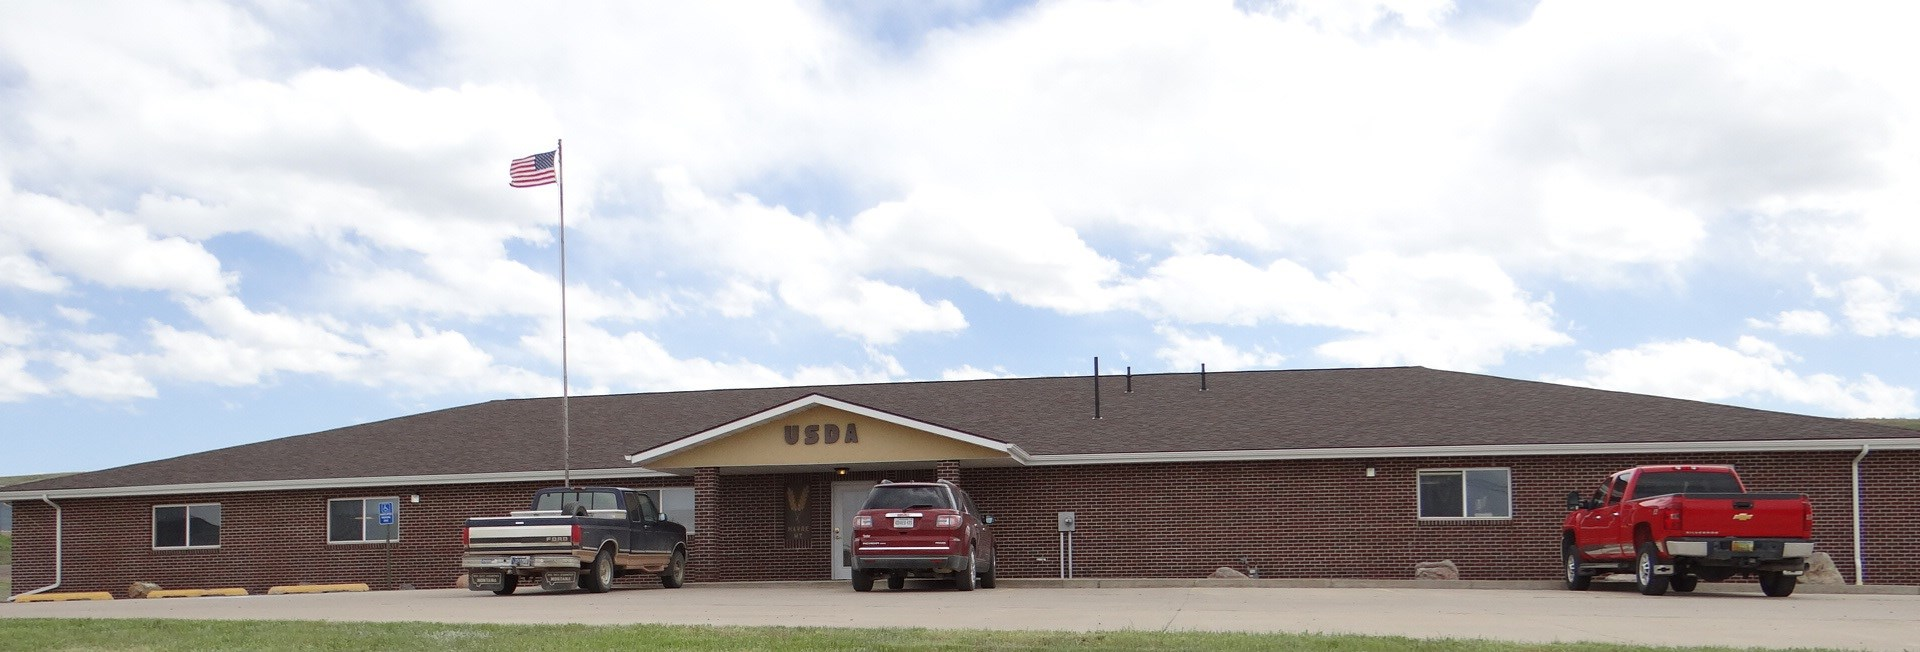 Commercial Income Property for Sale in Havre, Montana